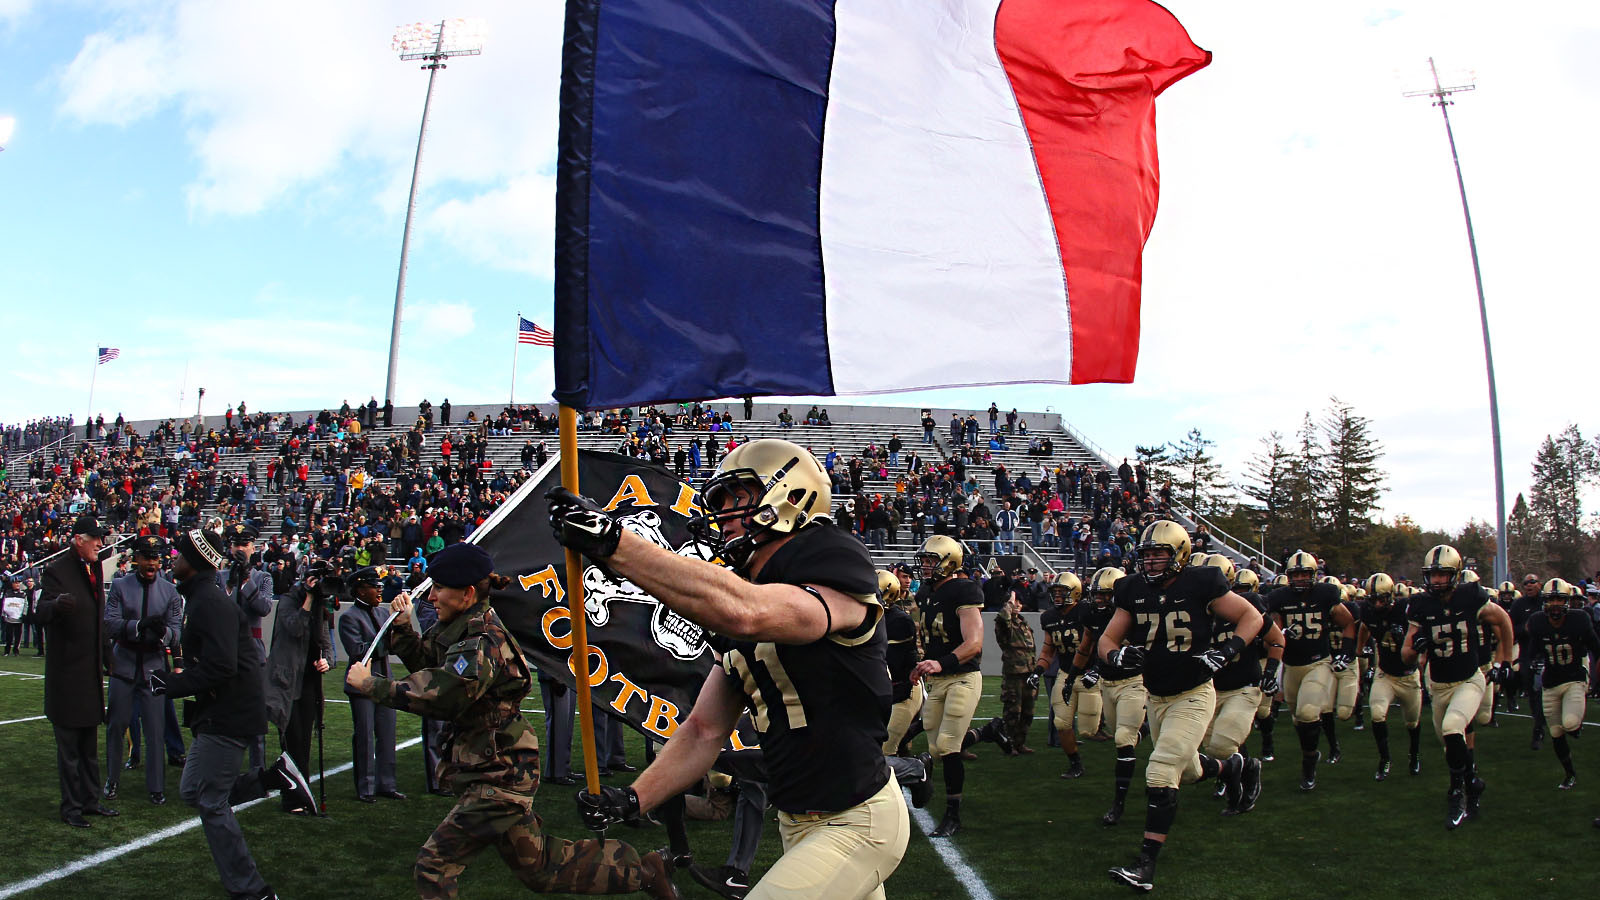 The Army football team carried a French flag a day after horrific terror attacks hit Paris